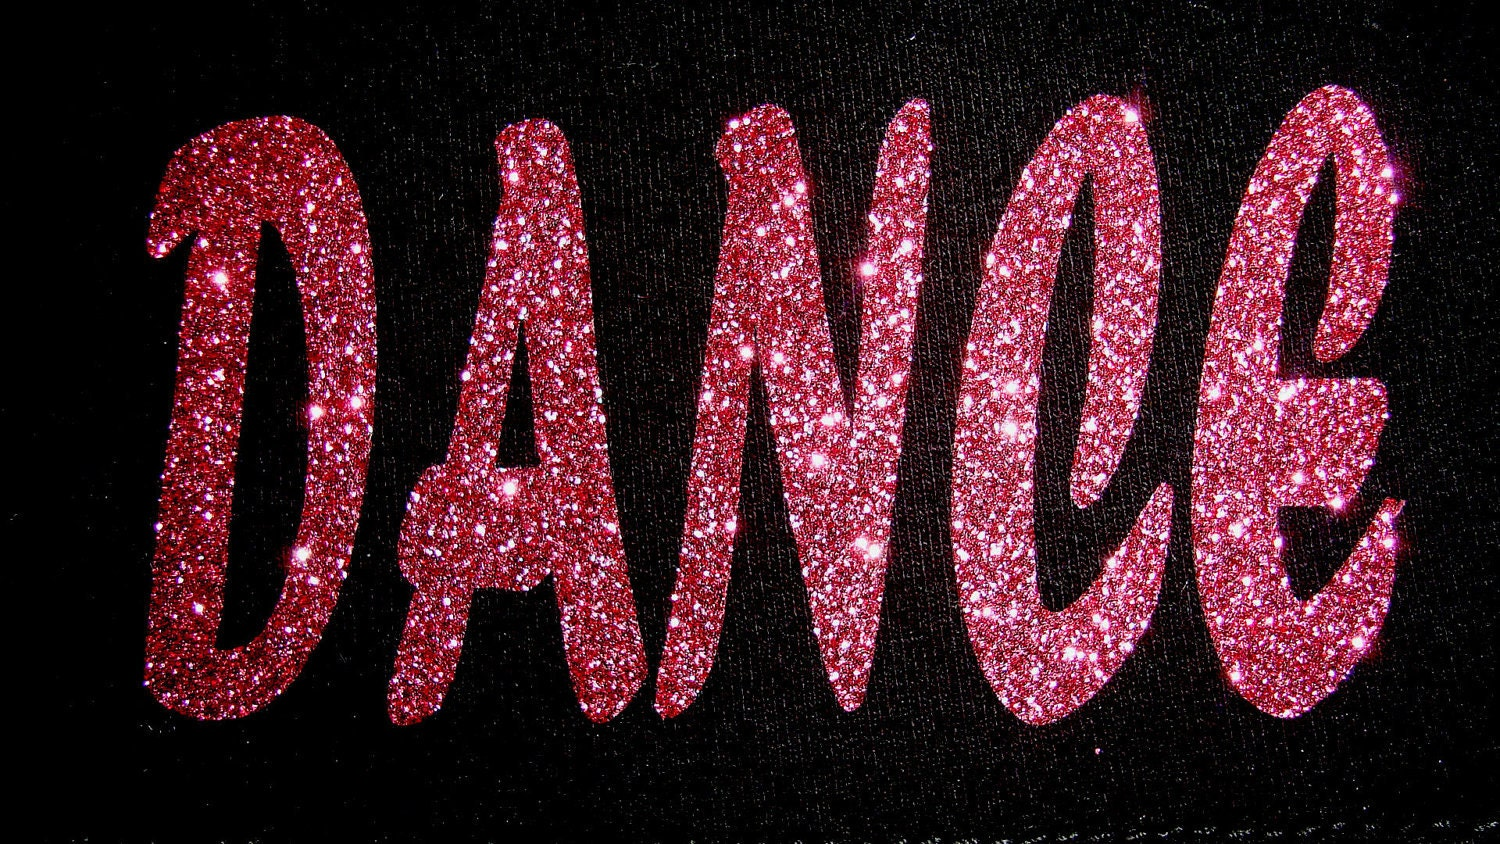 dance or cheer iron on decals  appliques  glitter transfers  from weartostart on etsy studio